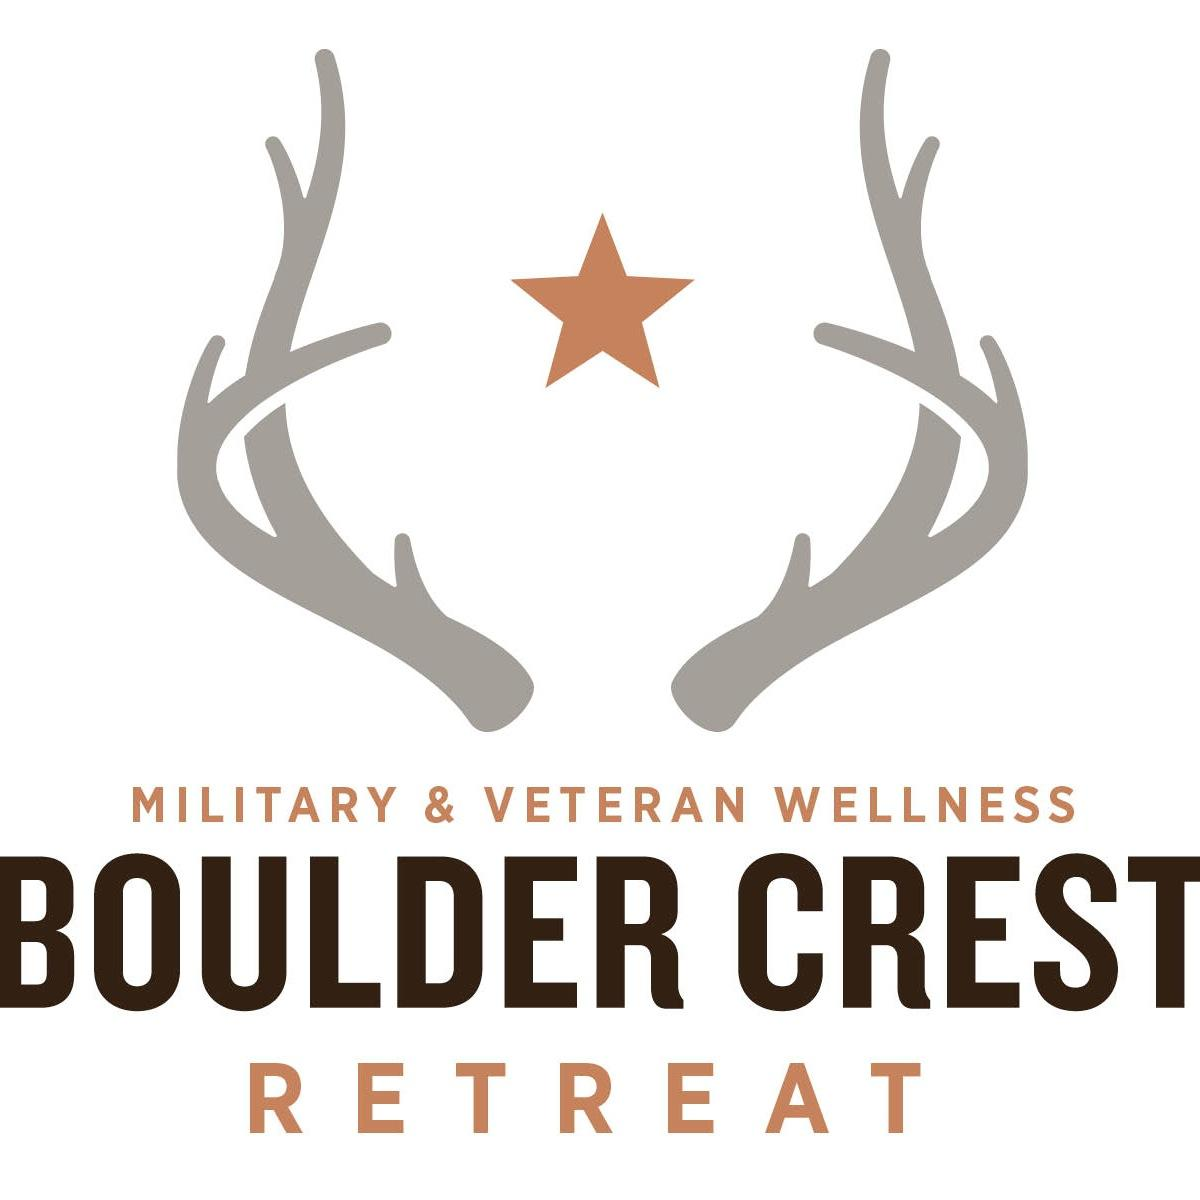 Boulder Crest Retreat - Family Rest & Reconnection (R&R)Stays: free, 2-7 night stays that provide families with the opportunity to rest, reconnect, and recharge. To book these stays, explore the Virginia and Arizona pages.